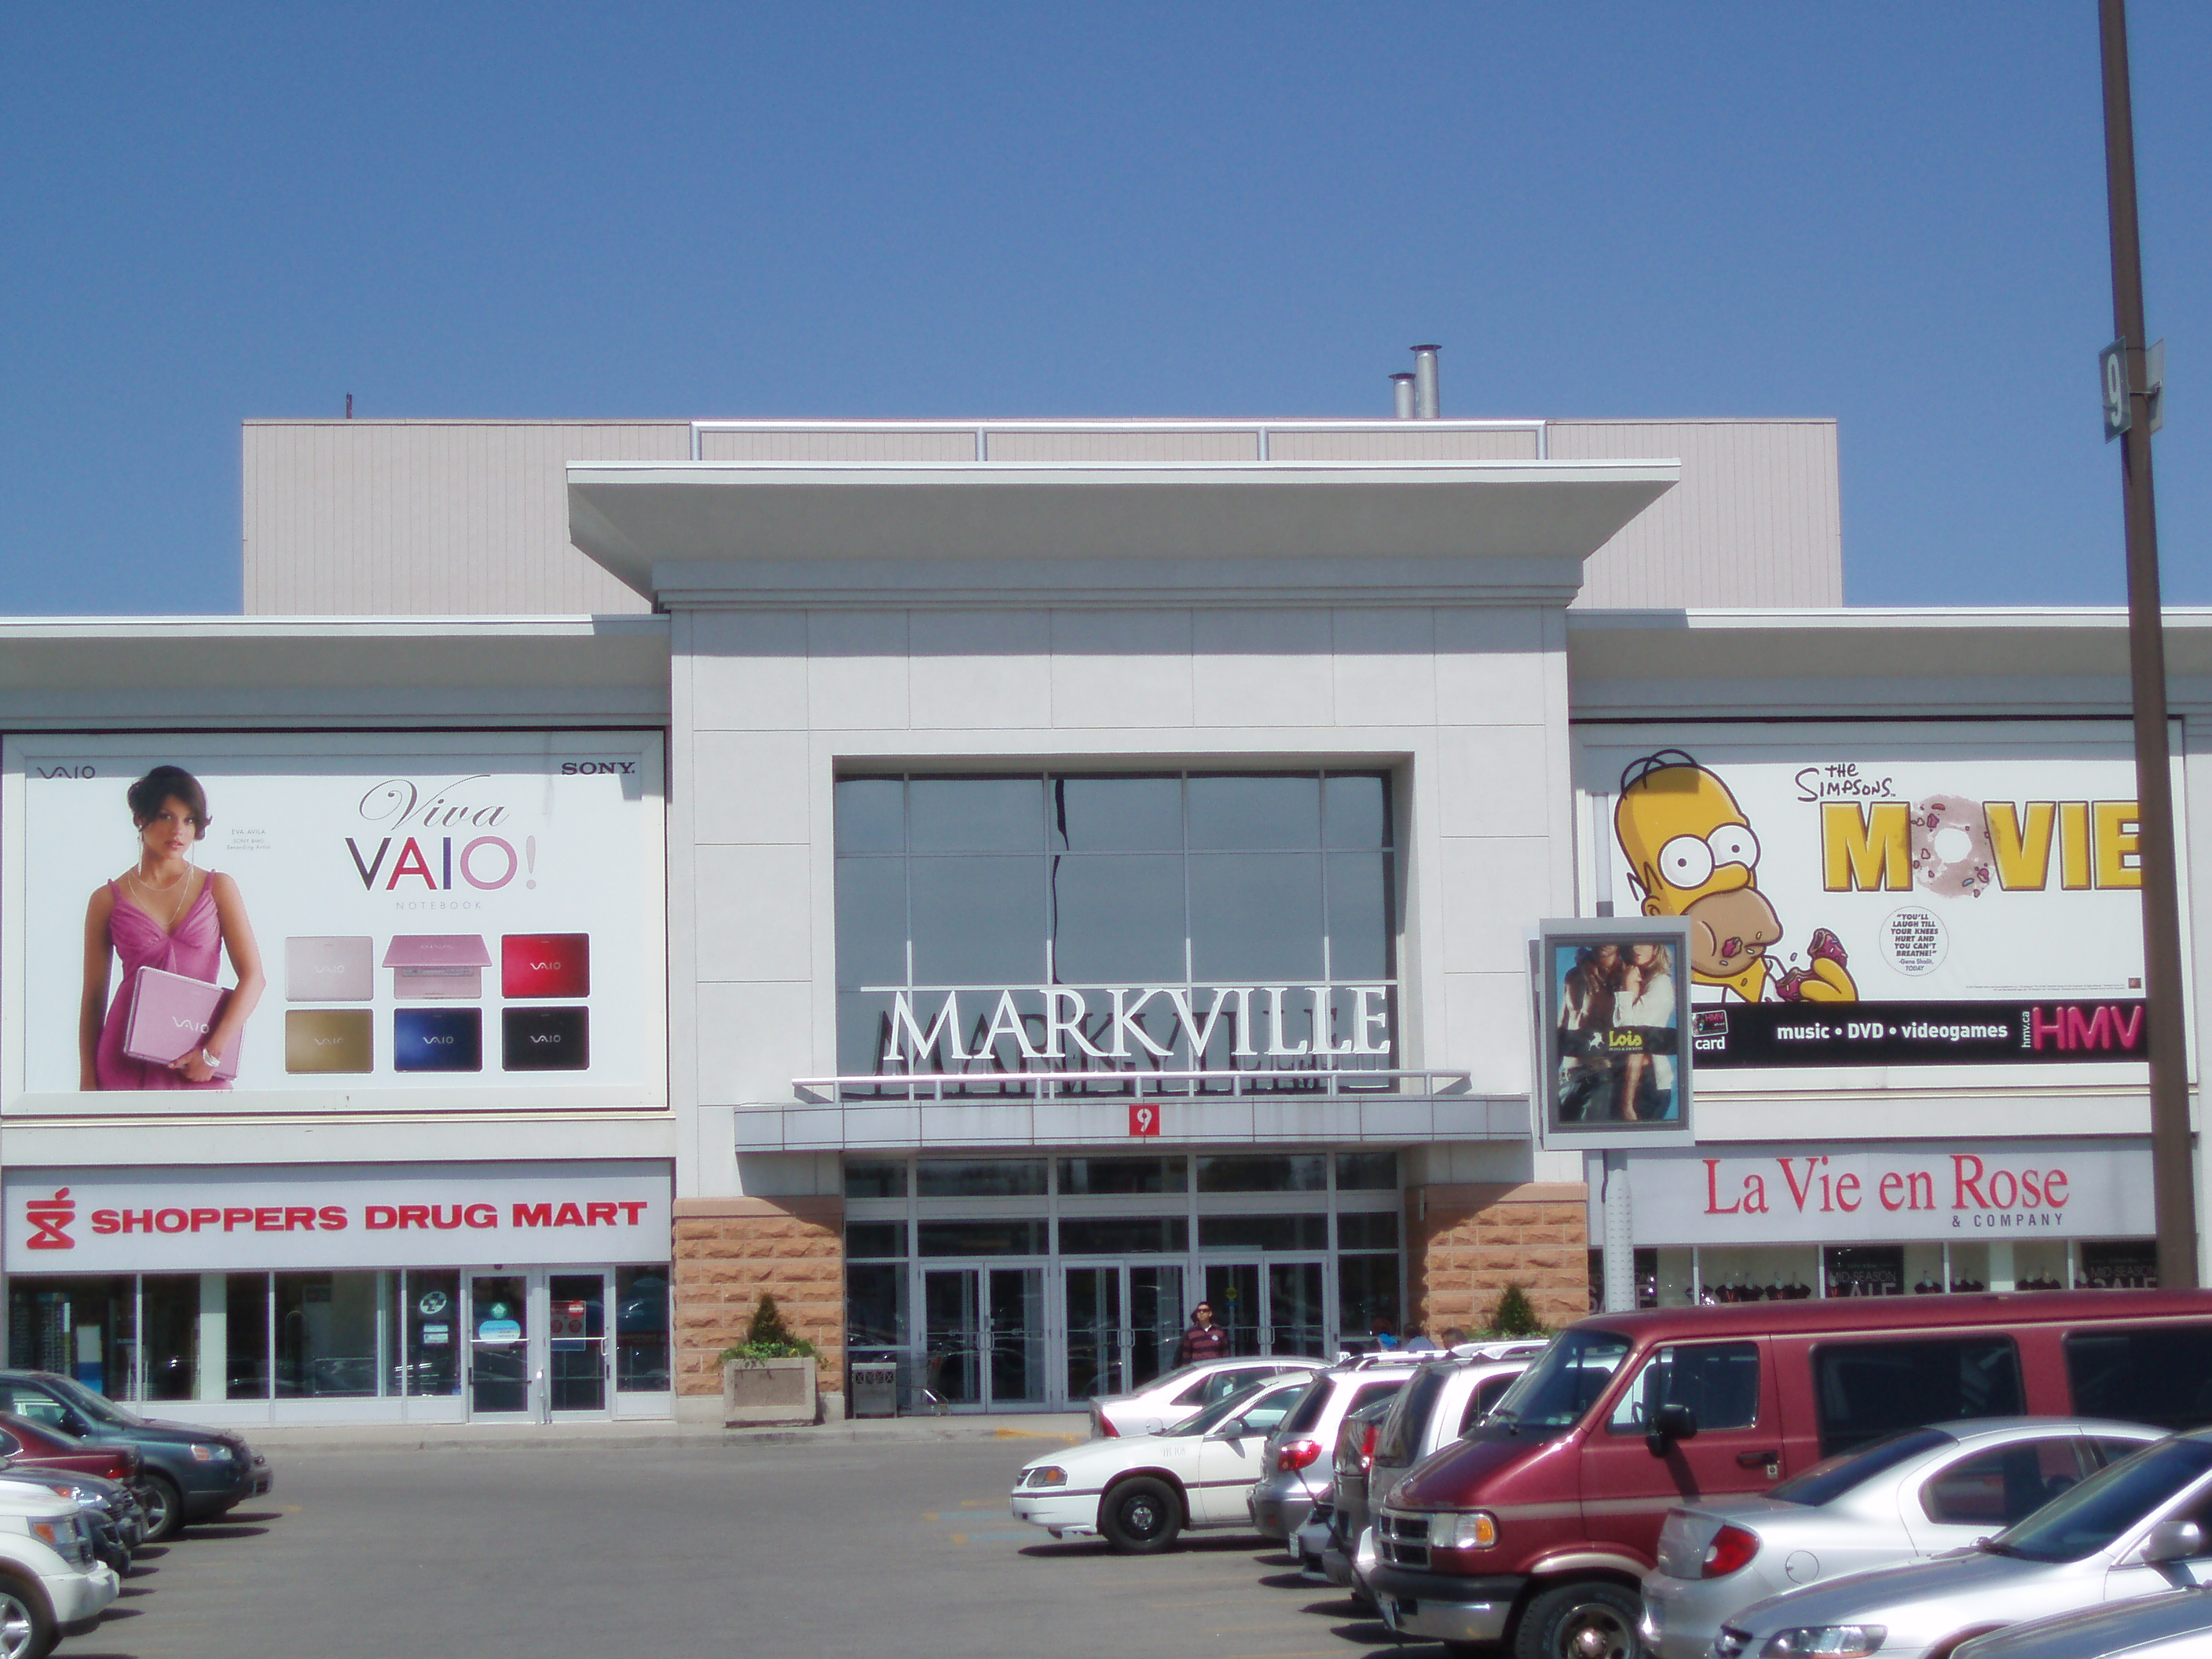 NEW YORK, NY (March 8, ) – Saks Fifth Avenue OFF 5TH is pleased to announce plans to open a new store at CF Markville in Markham, Ontario. The approximately 27, square foot store is scheduled to open in